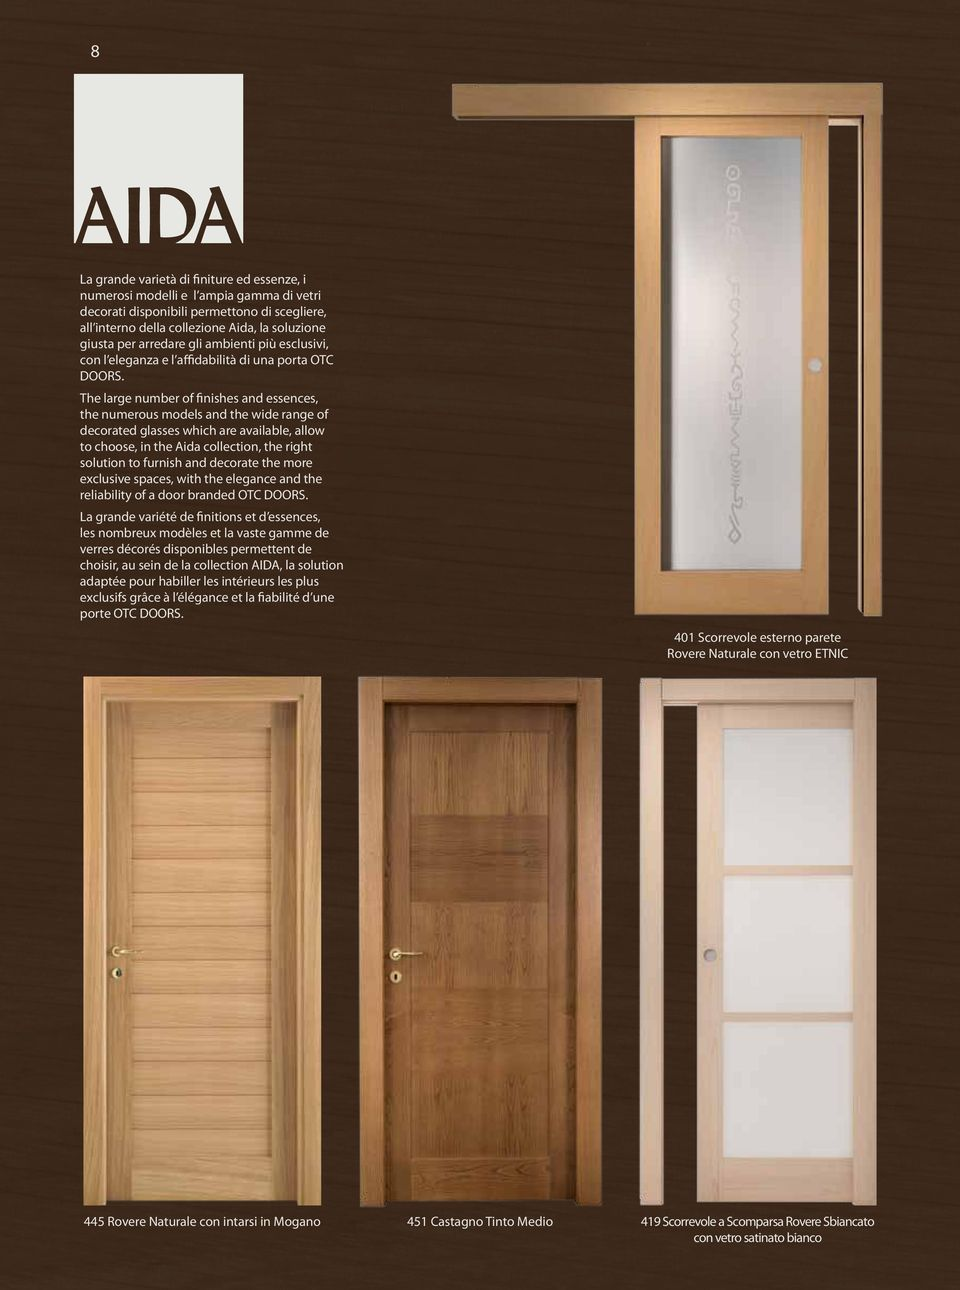 The large number of finishes and essences, the numerous models and the wide range of decorated glasses which are available, allow to choose, in the Aida collection, the right solution to furnish and